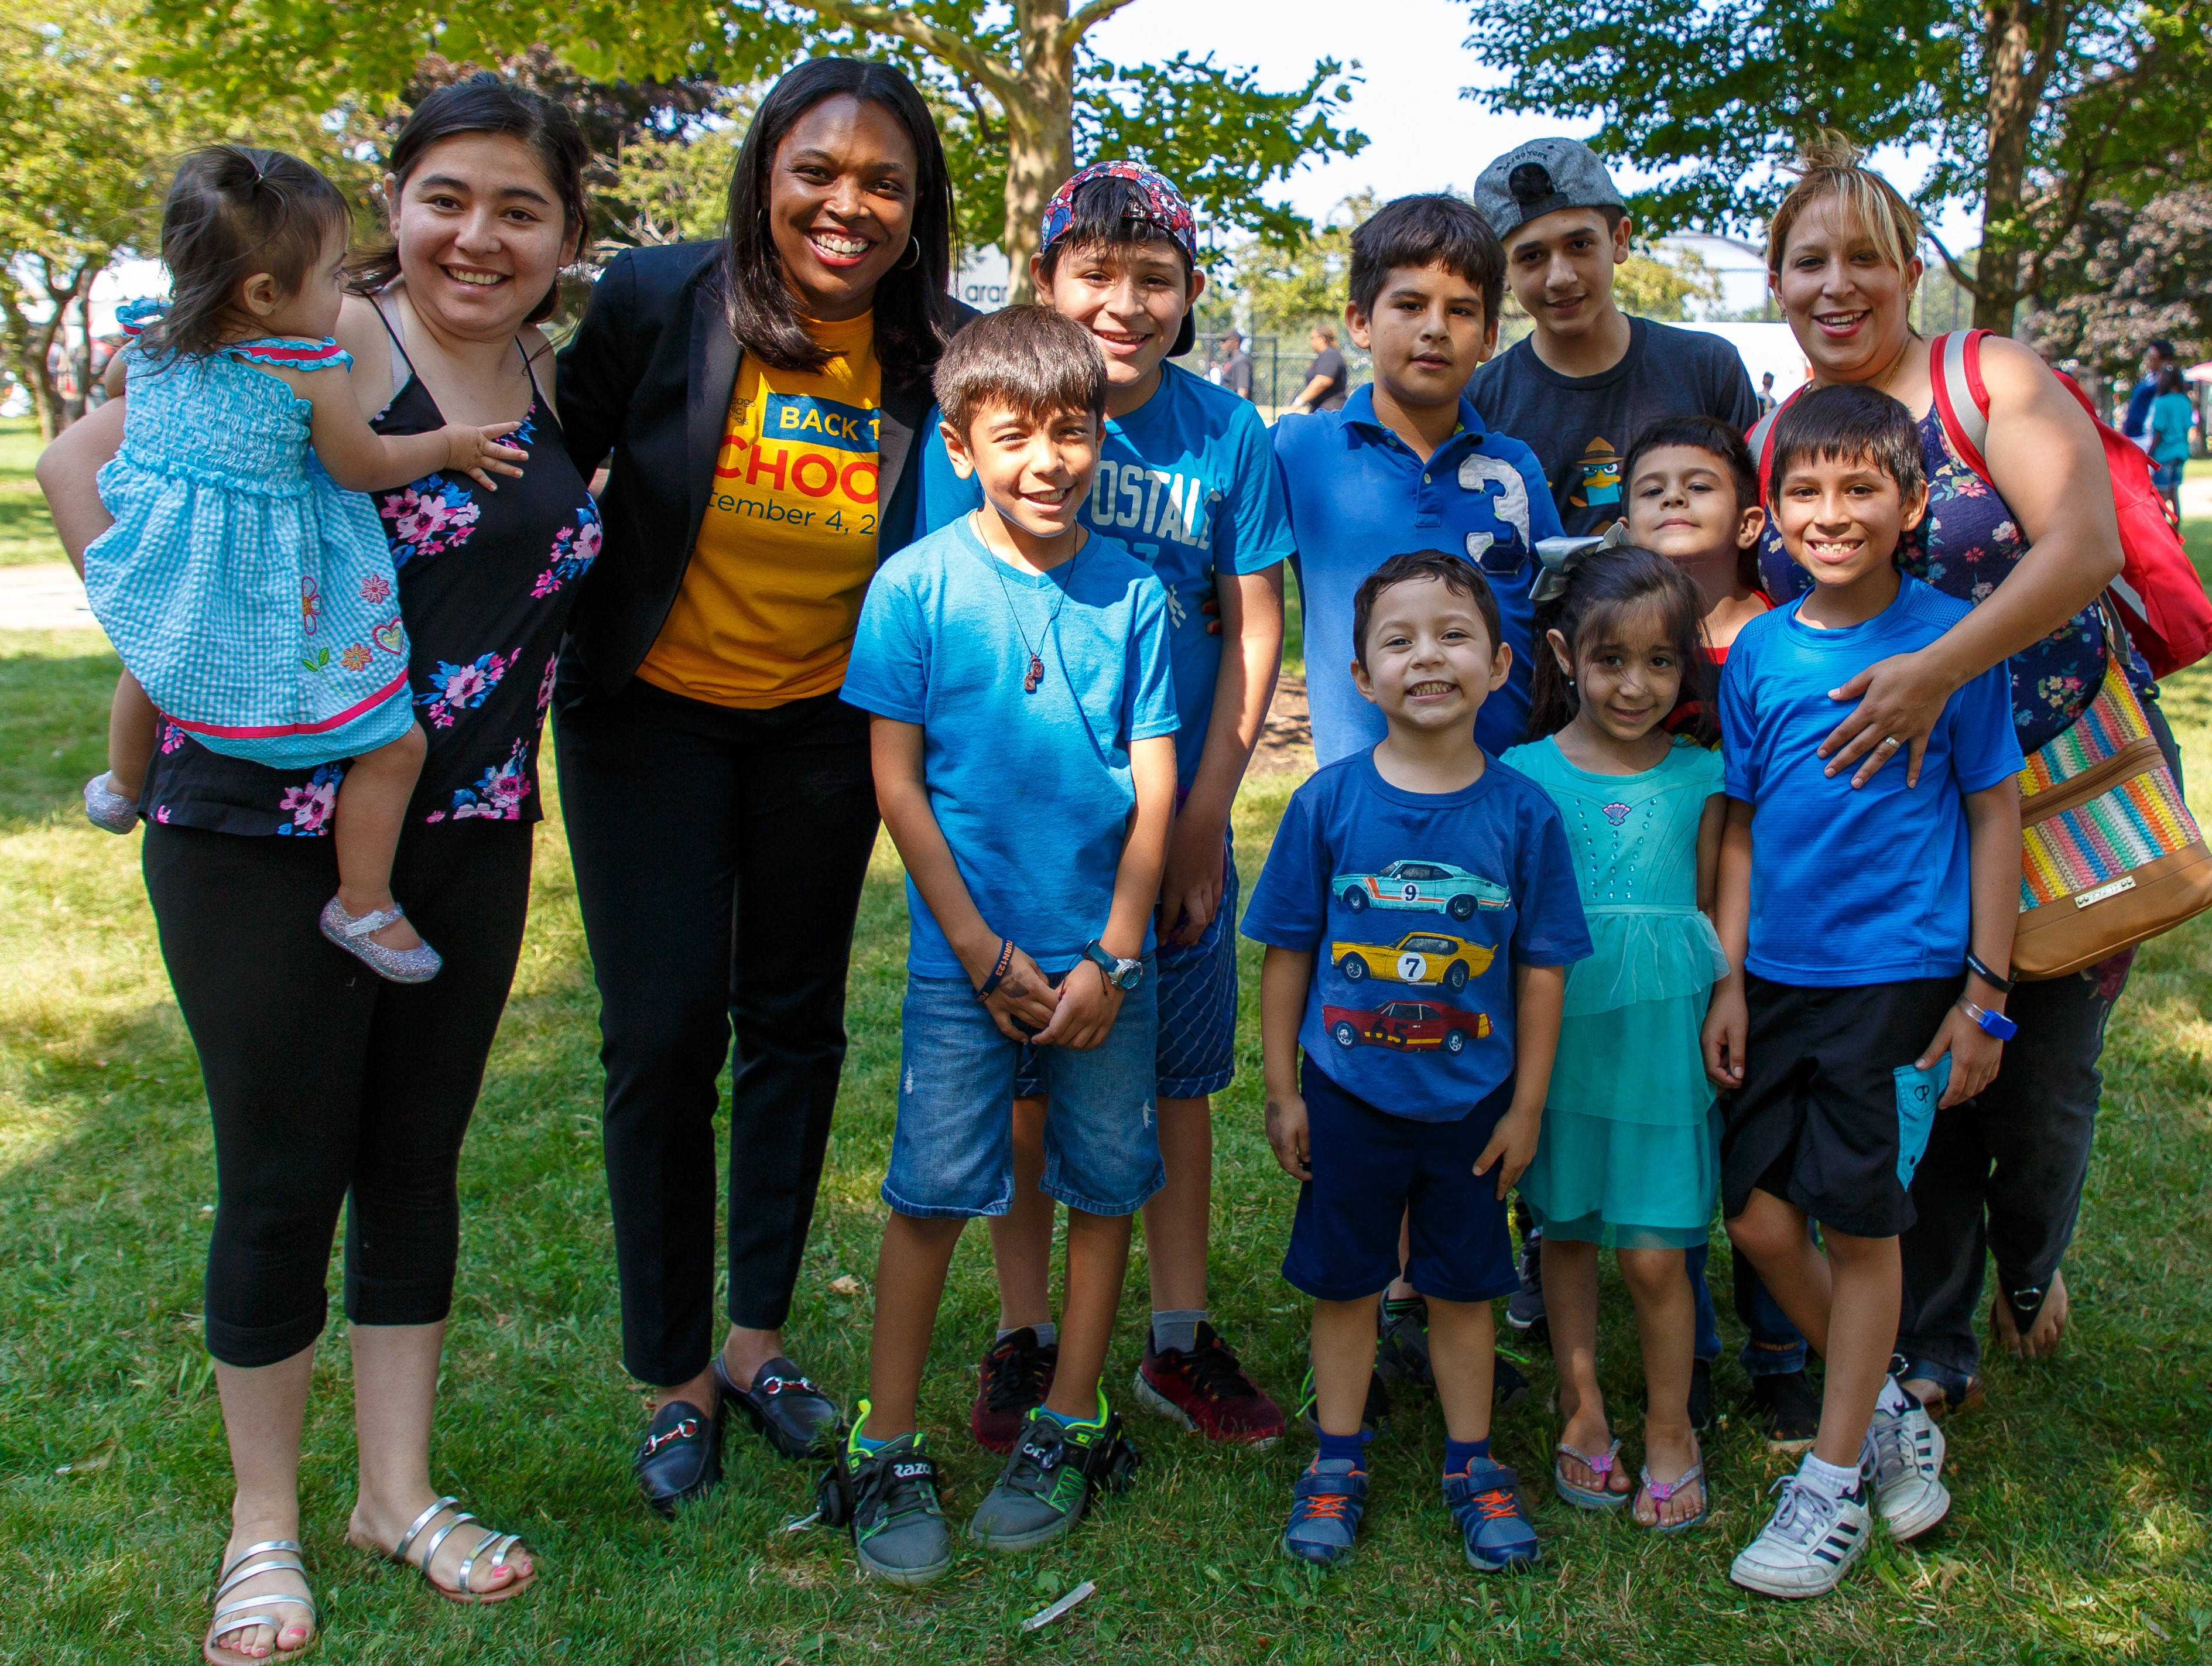 Chicago Public Schools Introduces New Parent Resources to Help Families Prepare for First Day of School on Tuesday, September 8